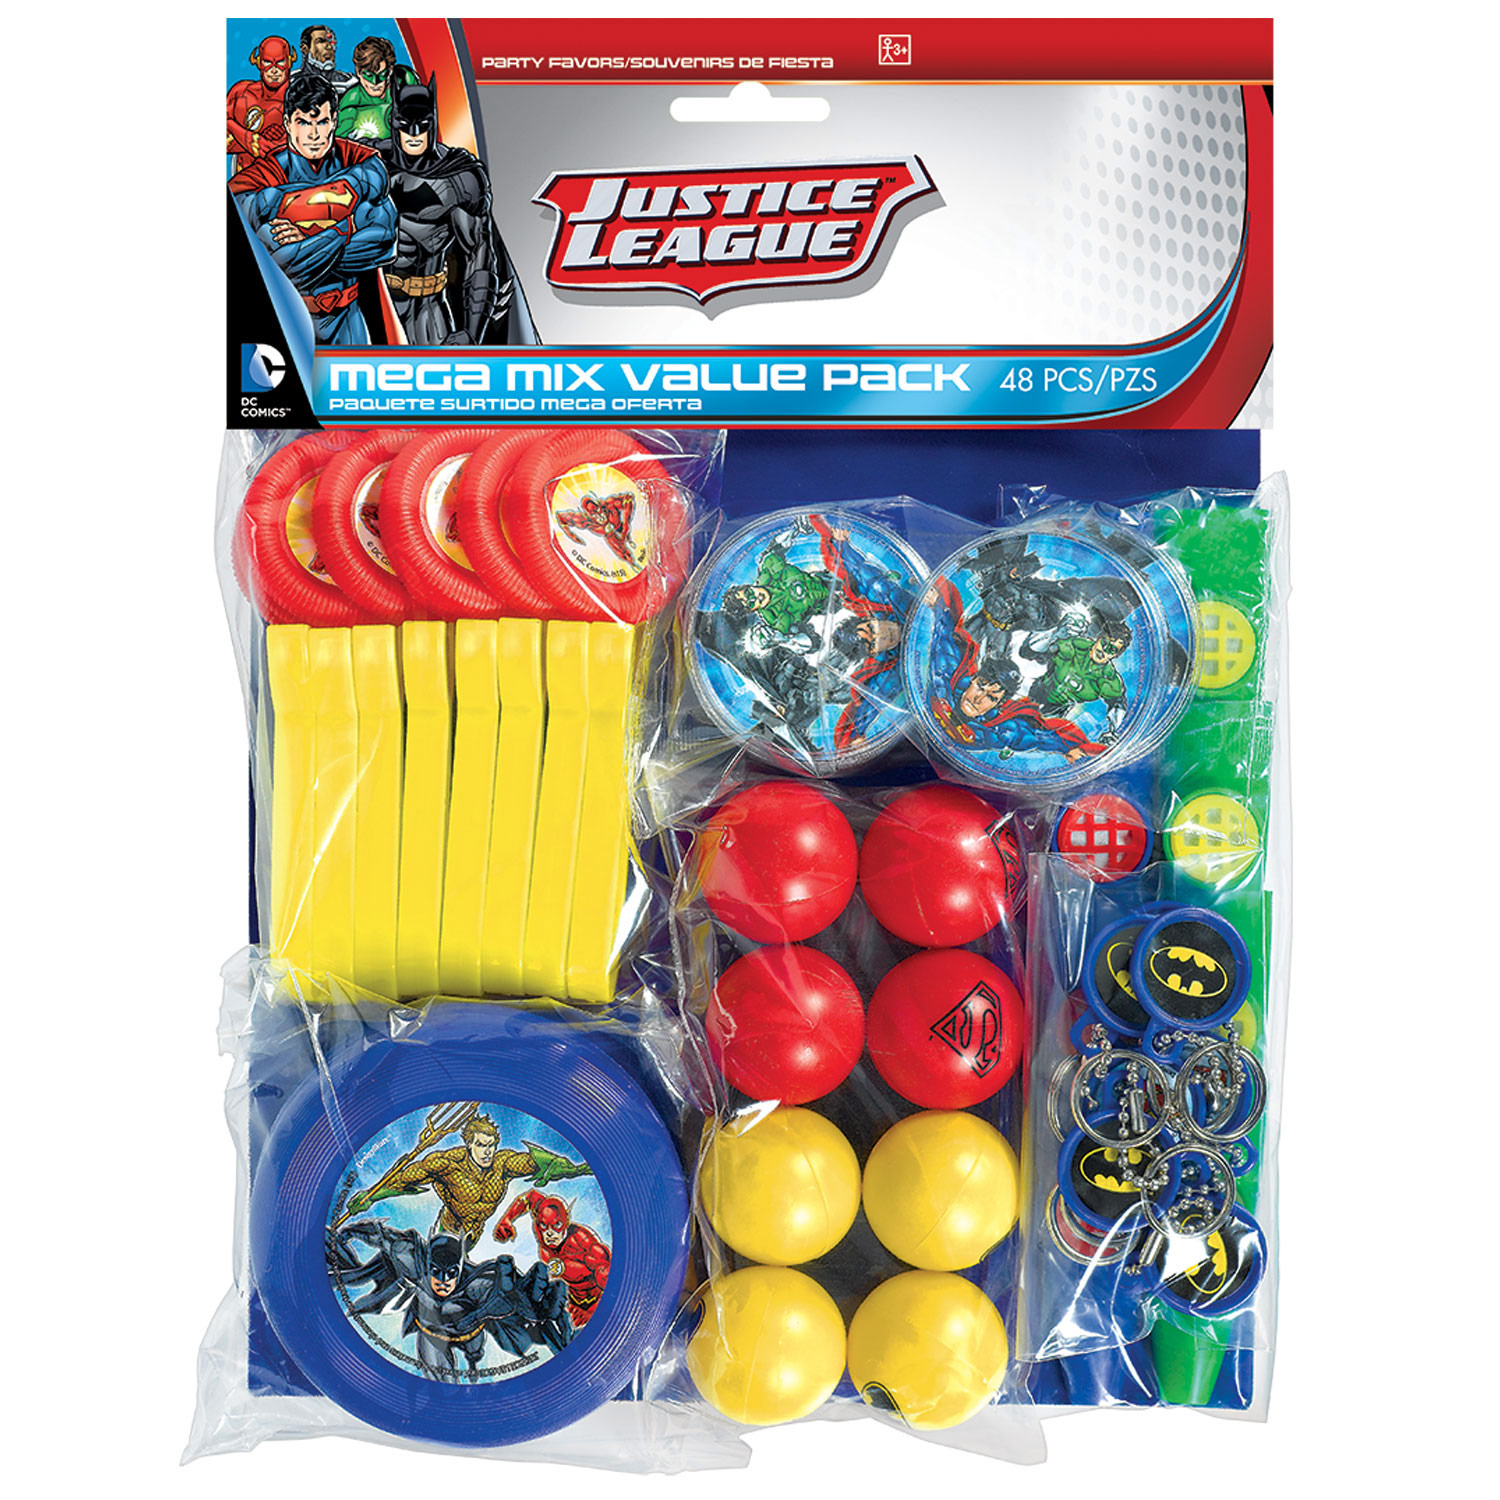 Justice League Party Favour Pack